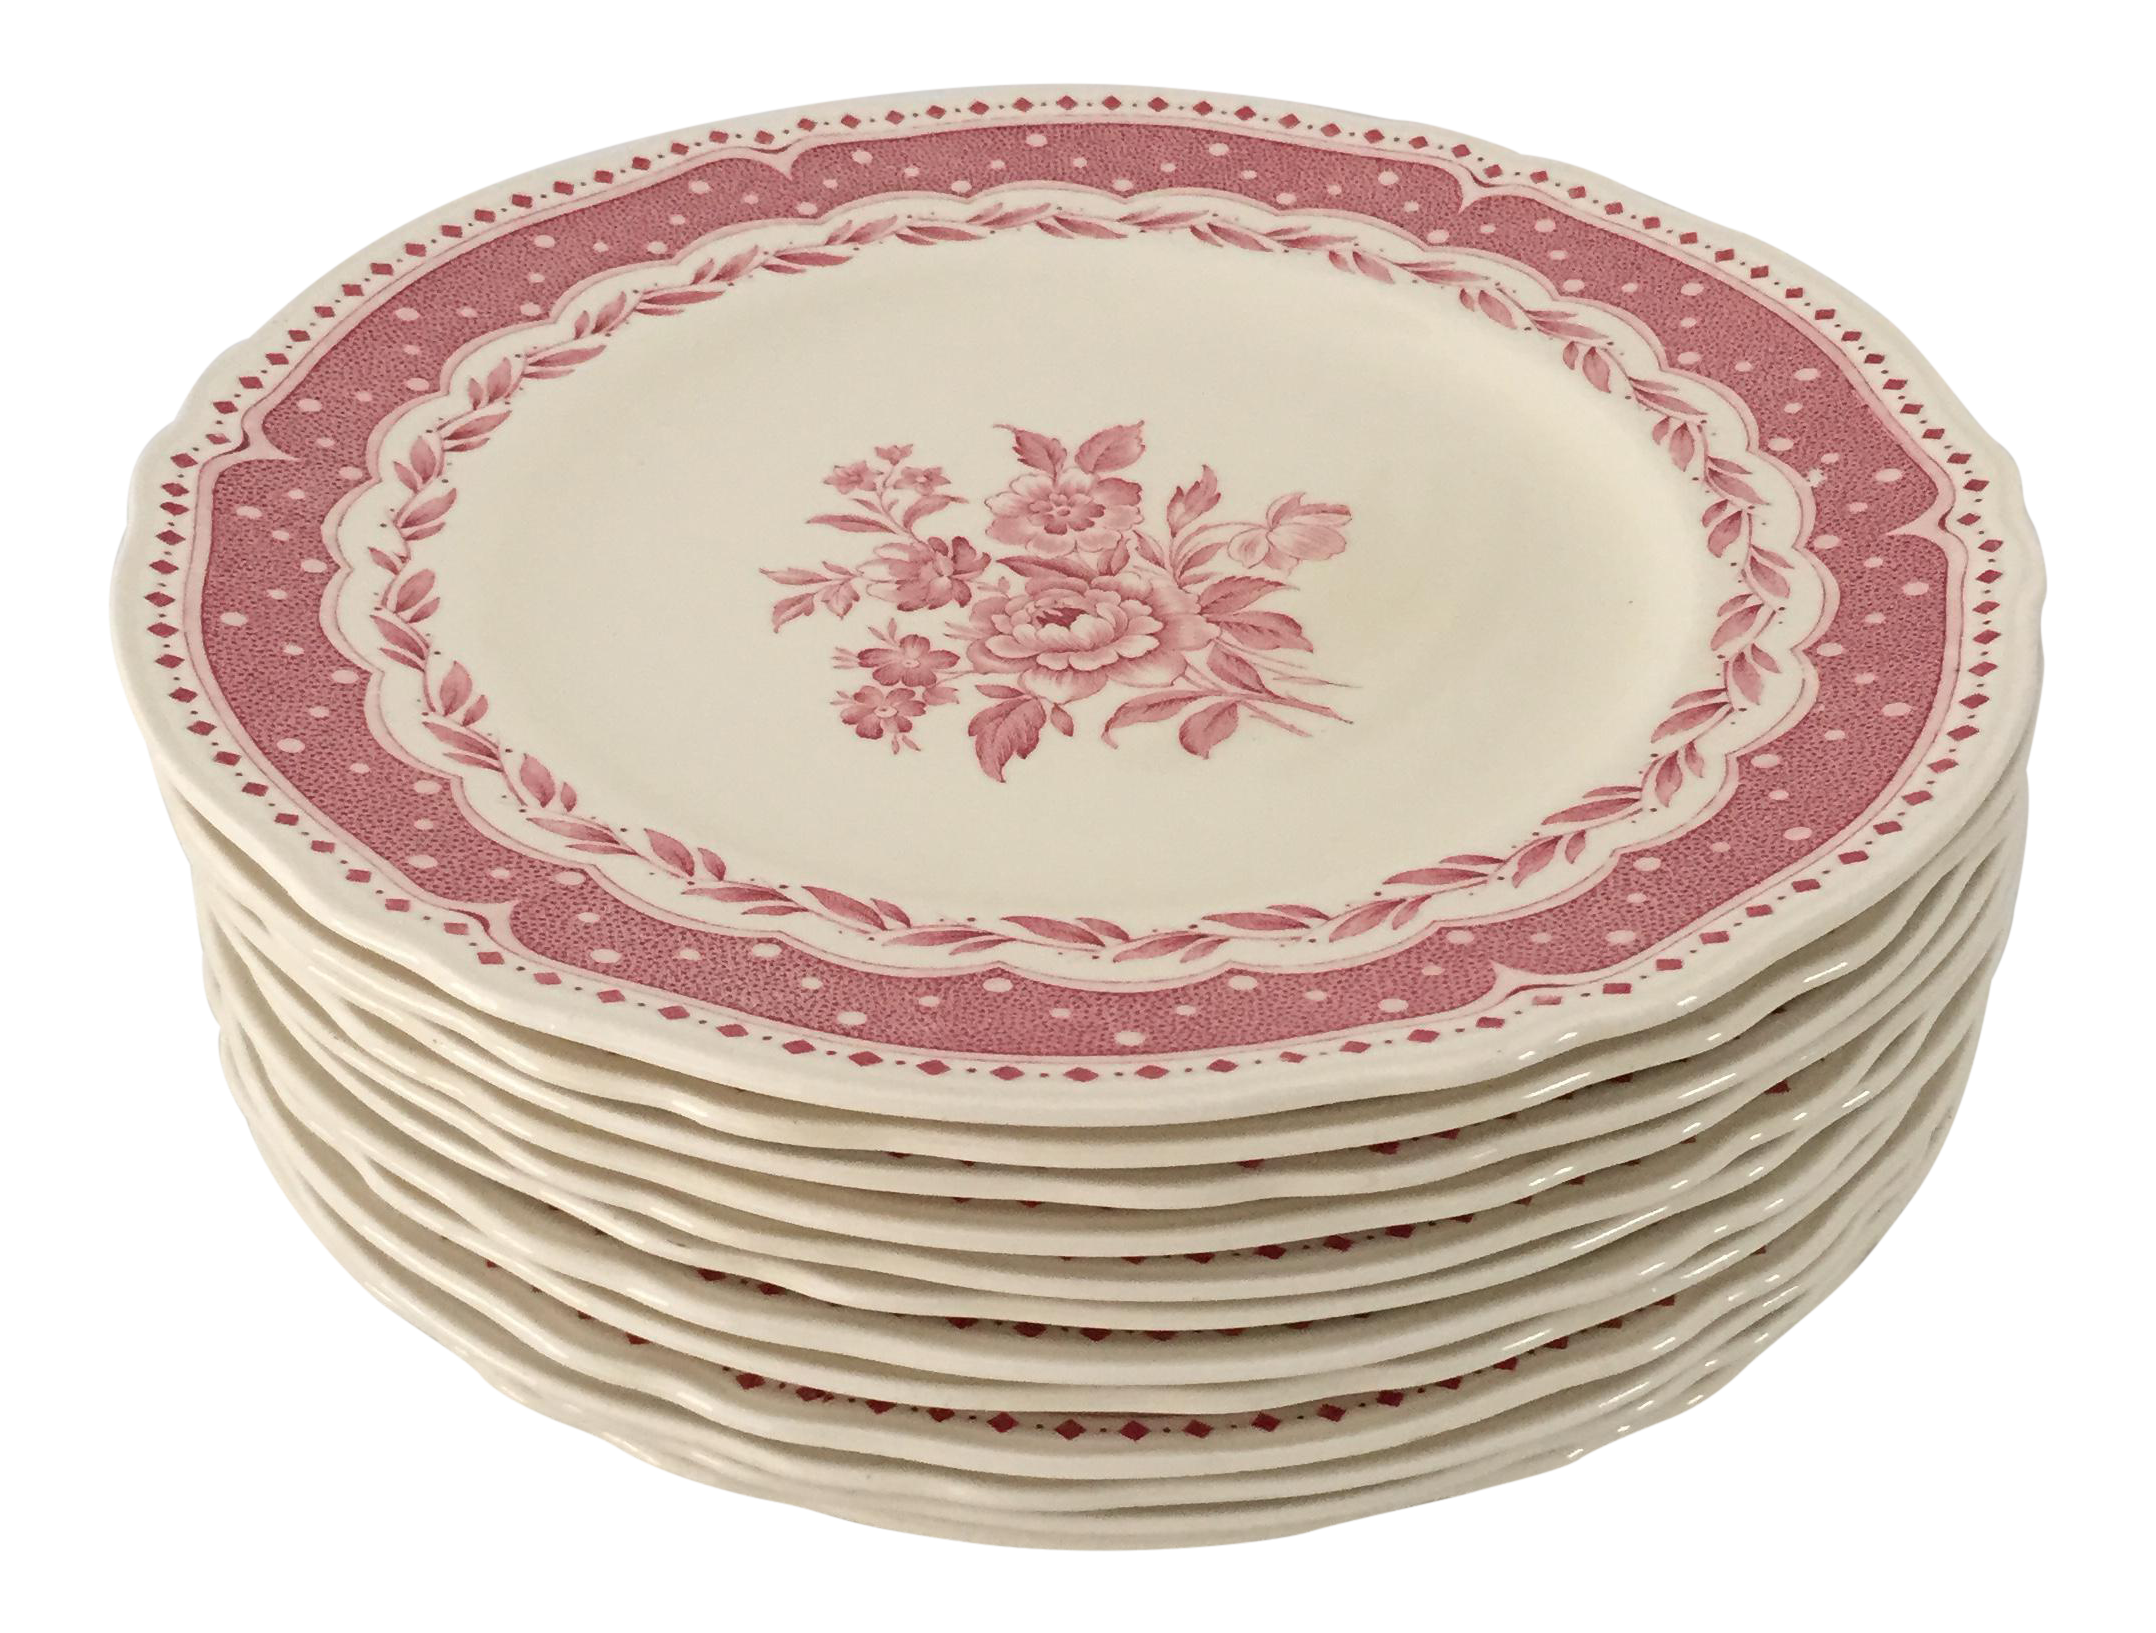 Vintage Avon Pattern Grindley-England Dinner Plates - Set of 12  sc 1 st  Chairish & Vintage Avon Pattern Grindley-England Dinner Plates - Set of 12 ...